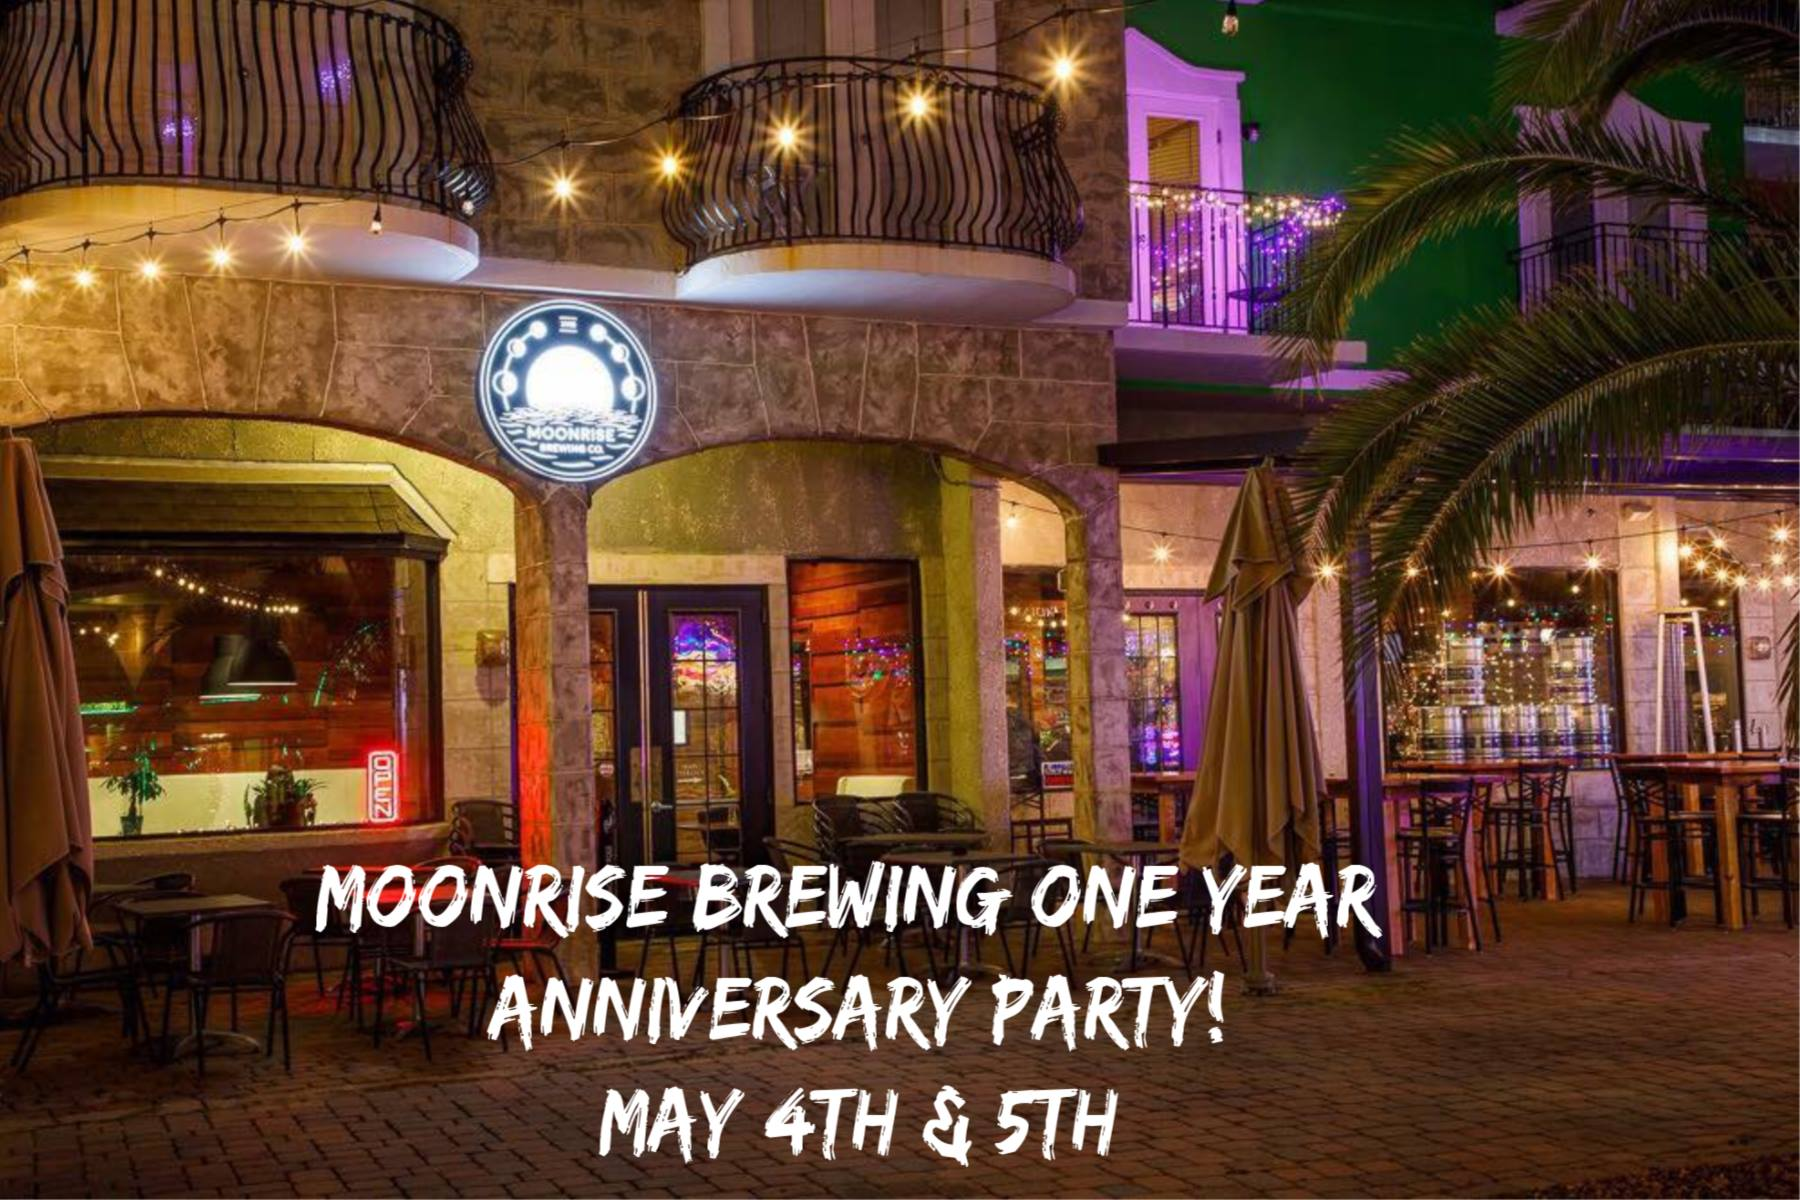 Moonrise Brewing Company 1-Year Anniversary